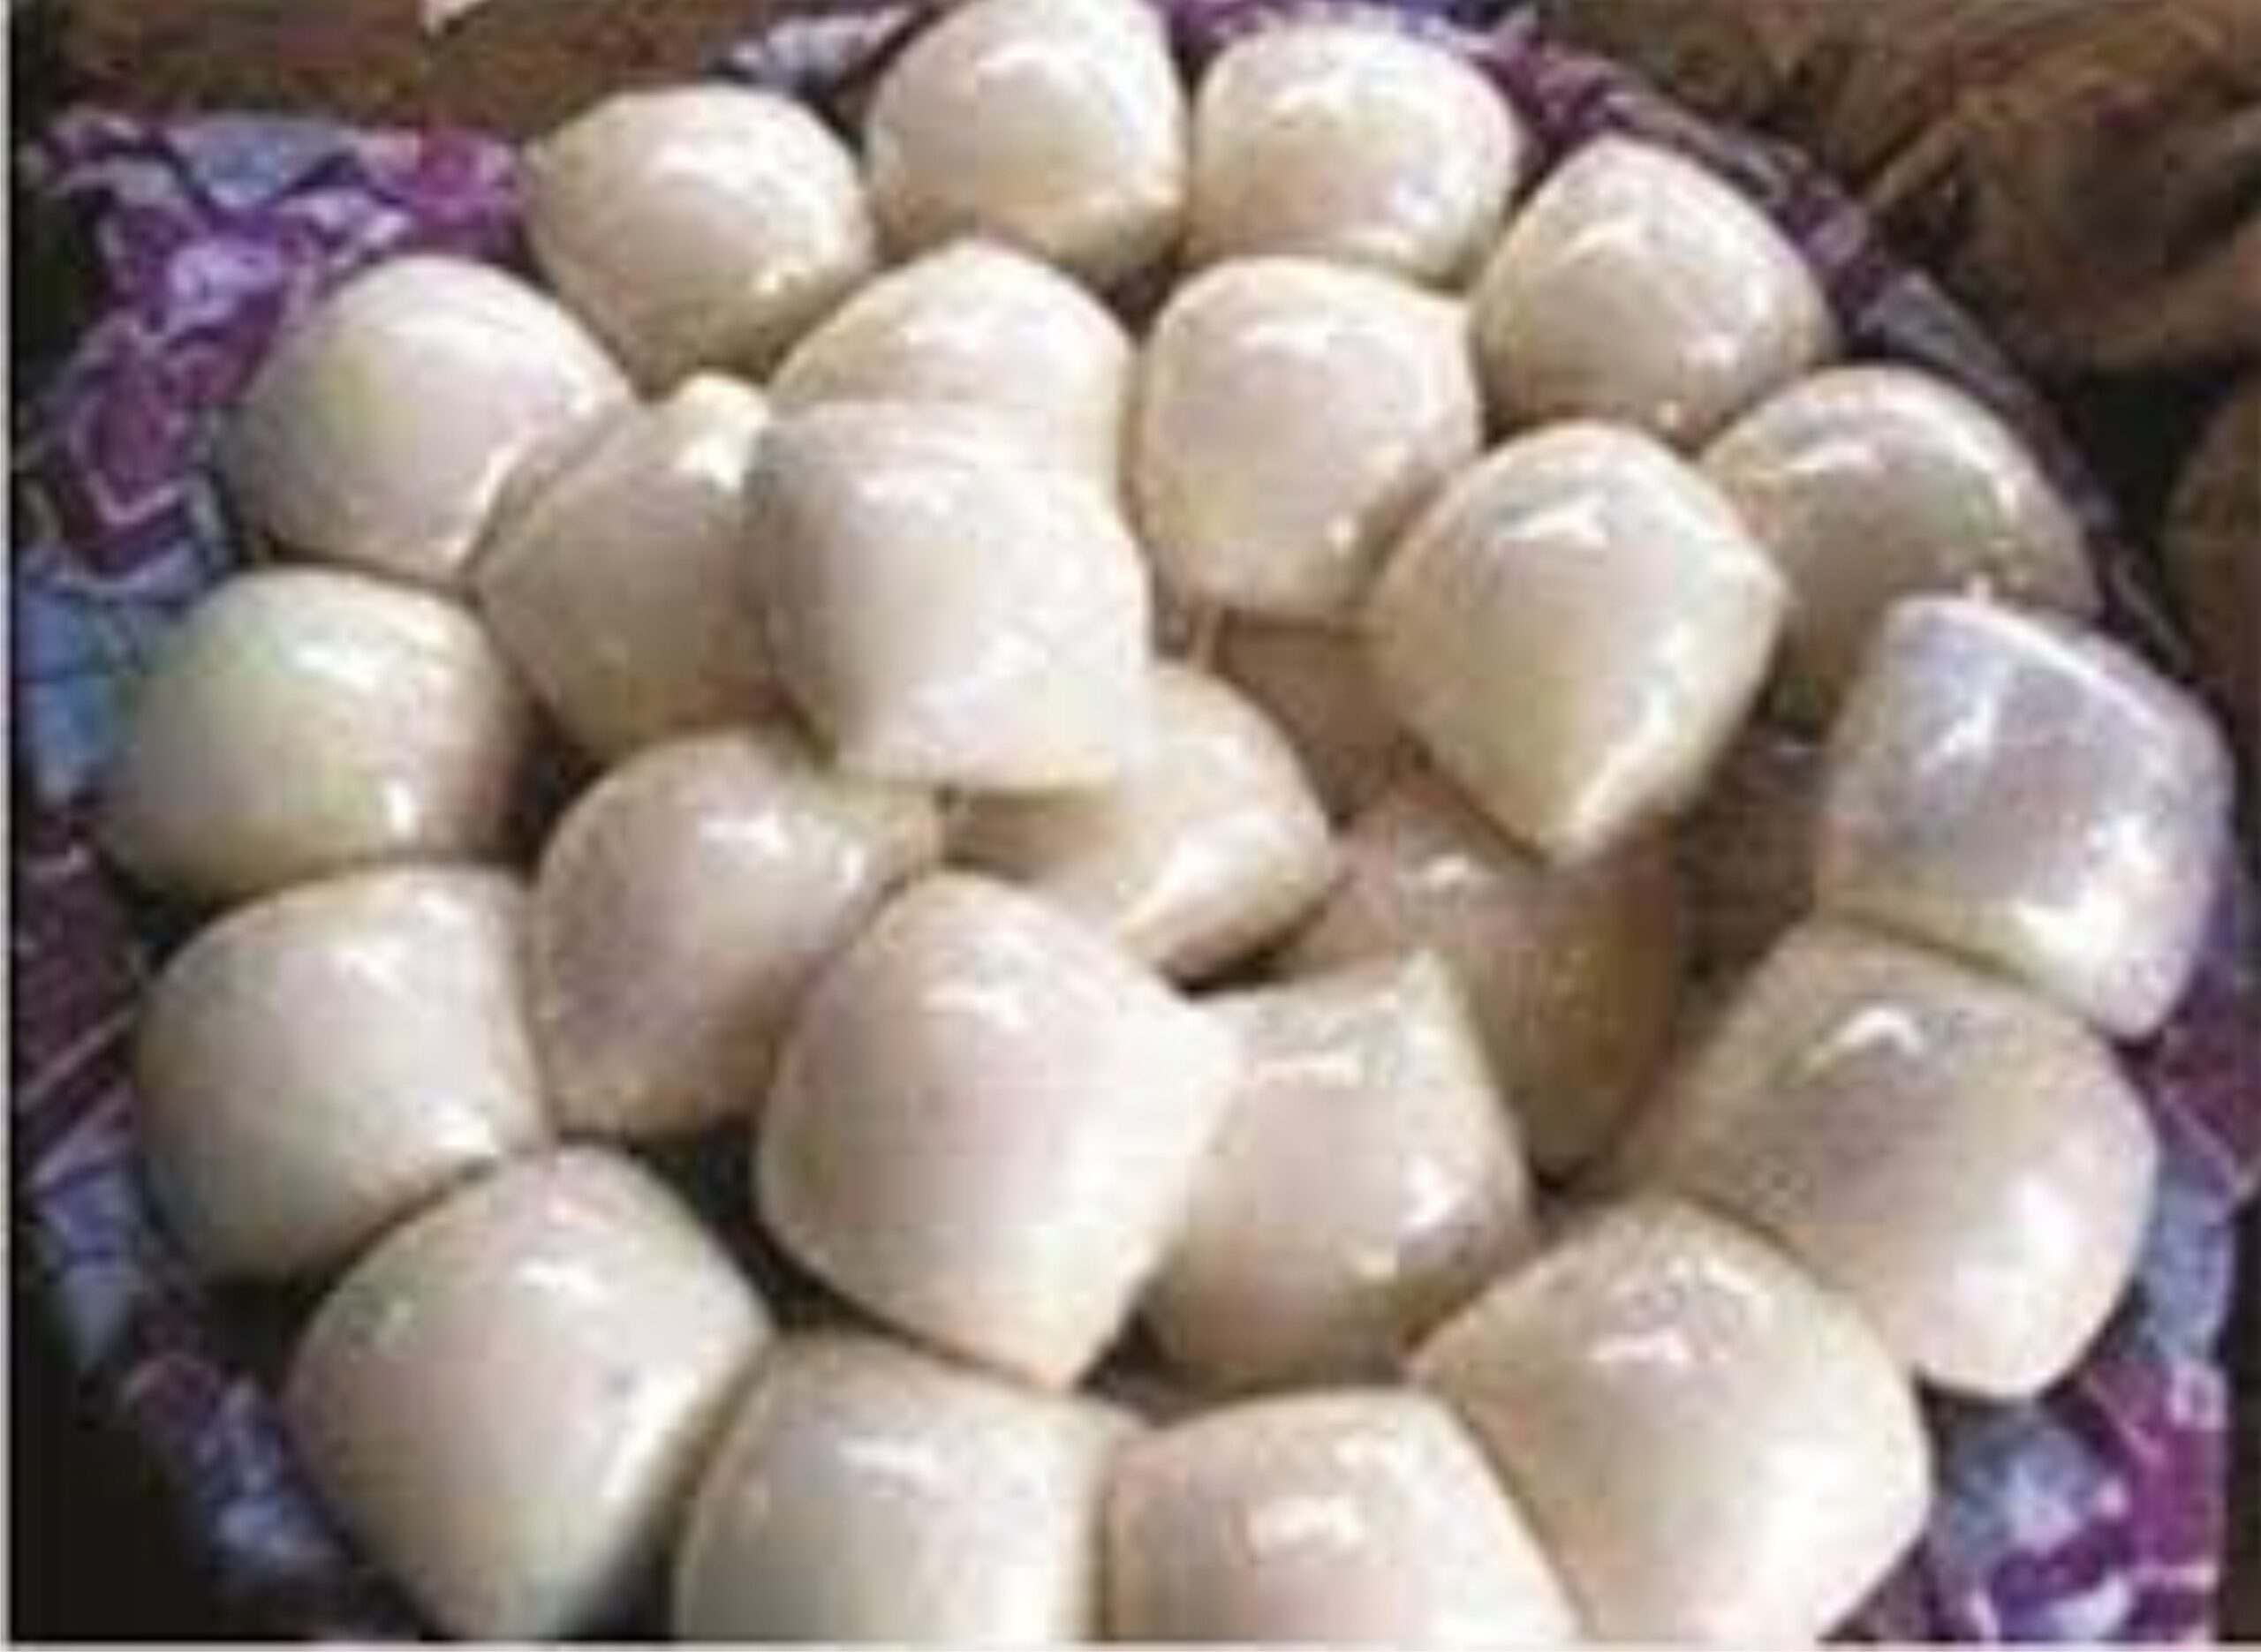 Why we mix hypo, detergents and potash with cassava – Fufu producers